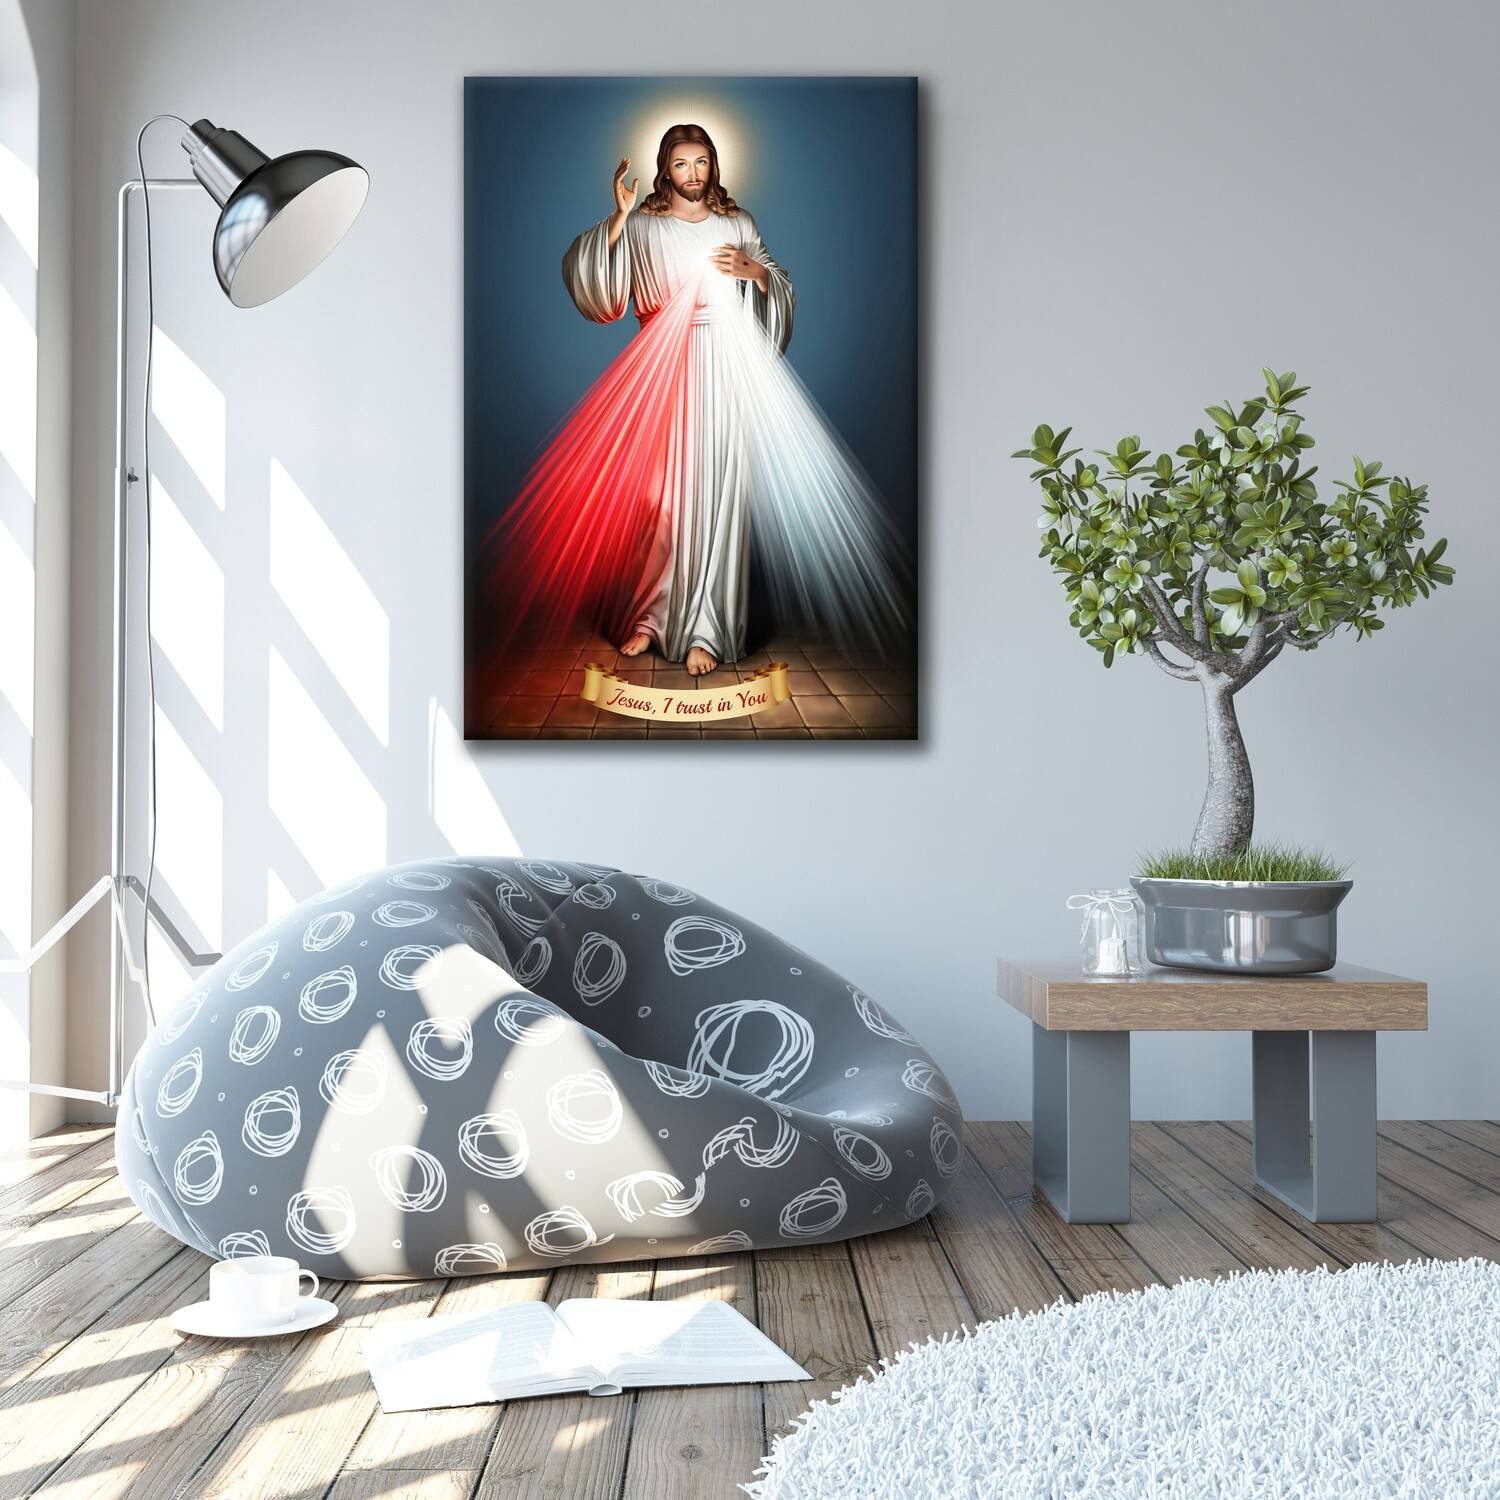 Divine Mercy Painting Blue -Christian Wallart -Jesus Divine Mercy Picture Printed on Frameless Acrylic Glass- Ready To Hang